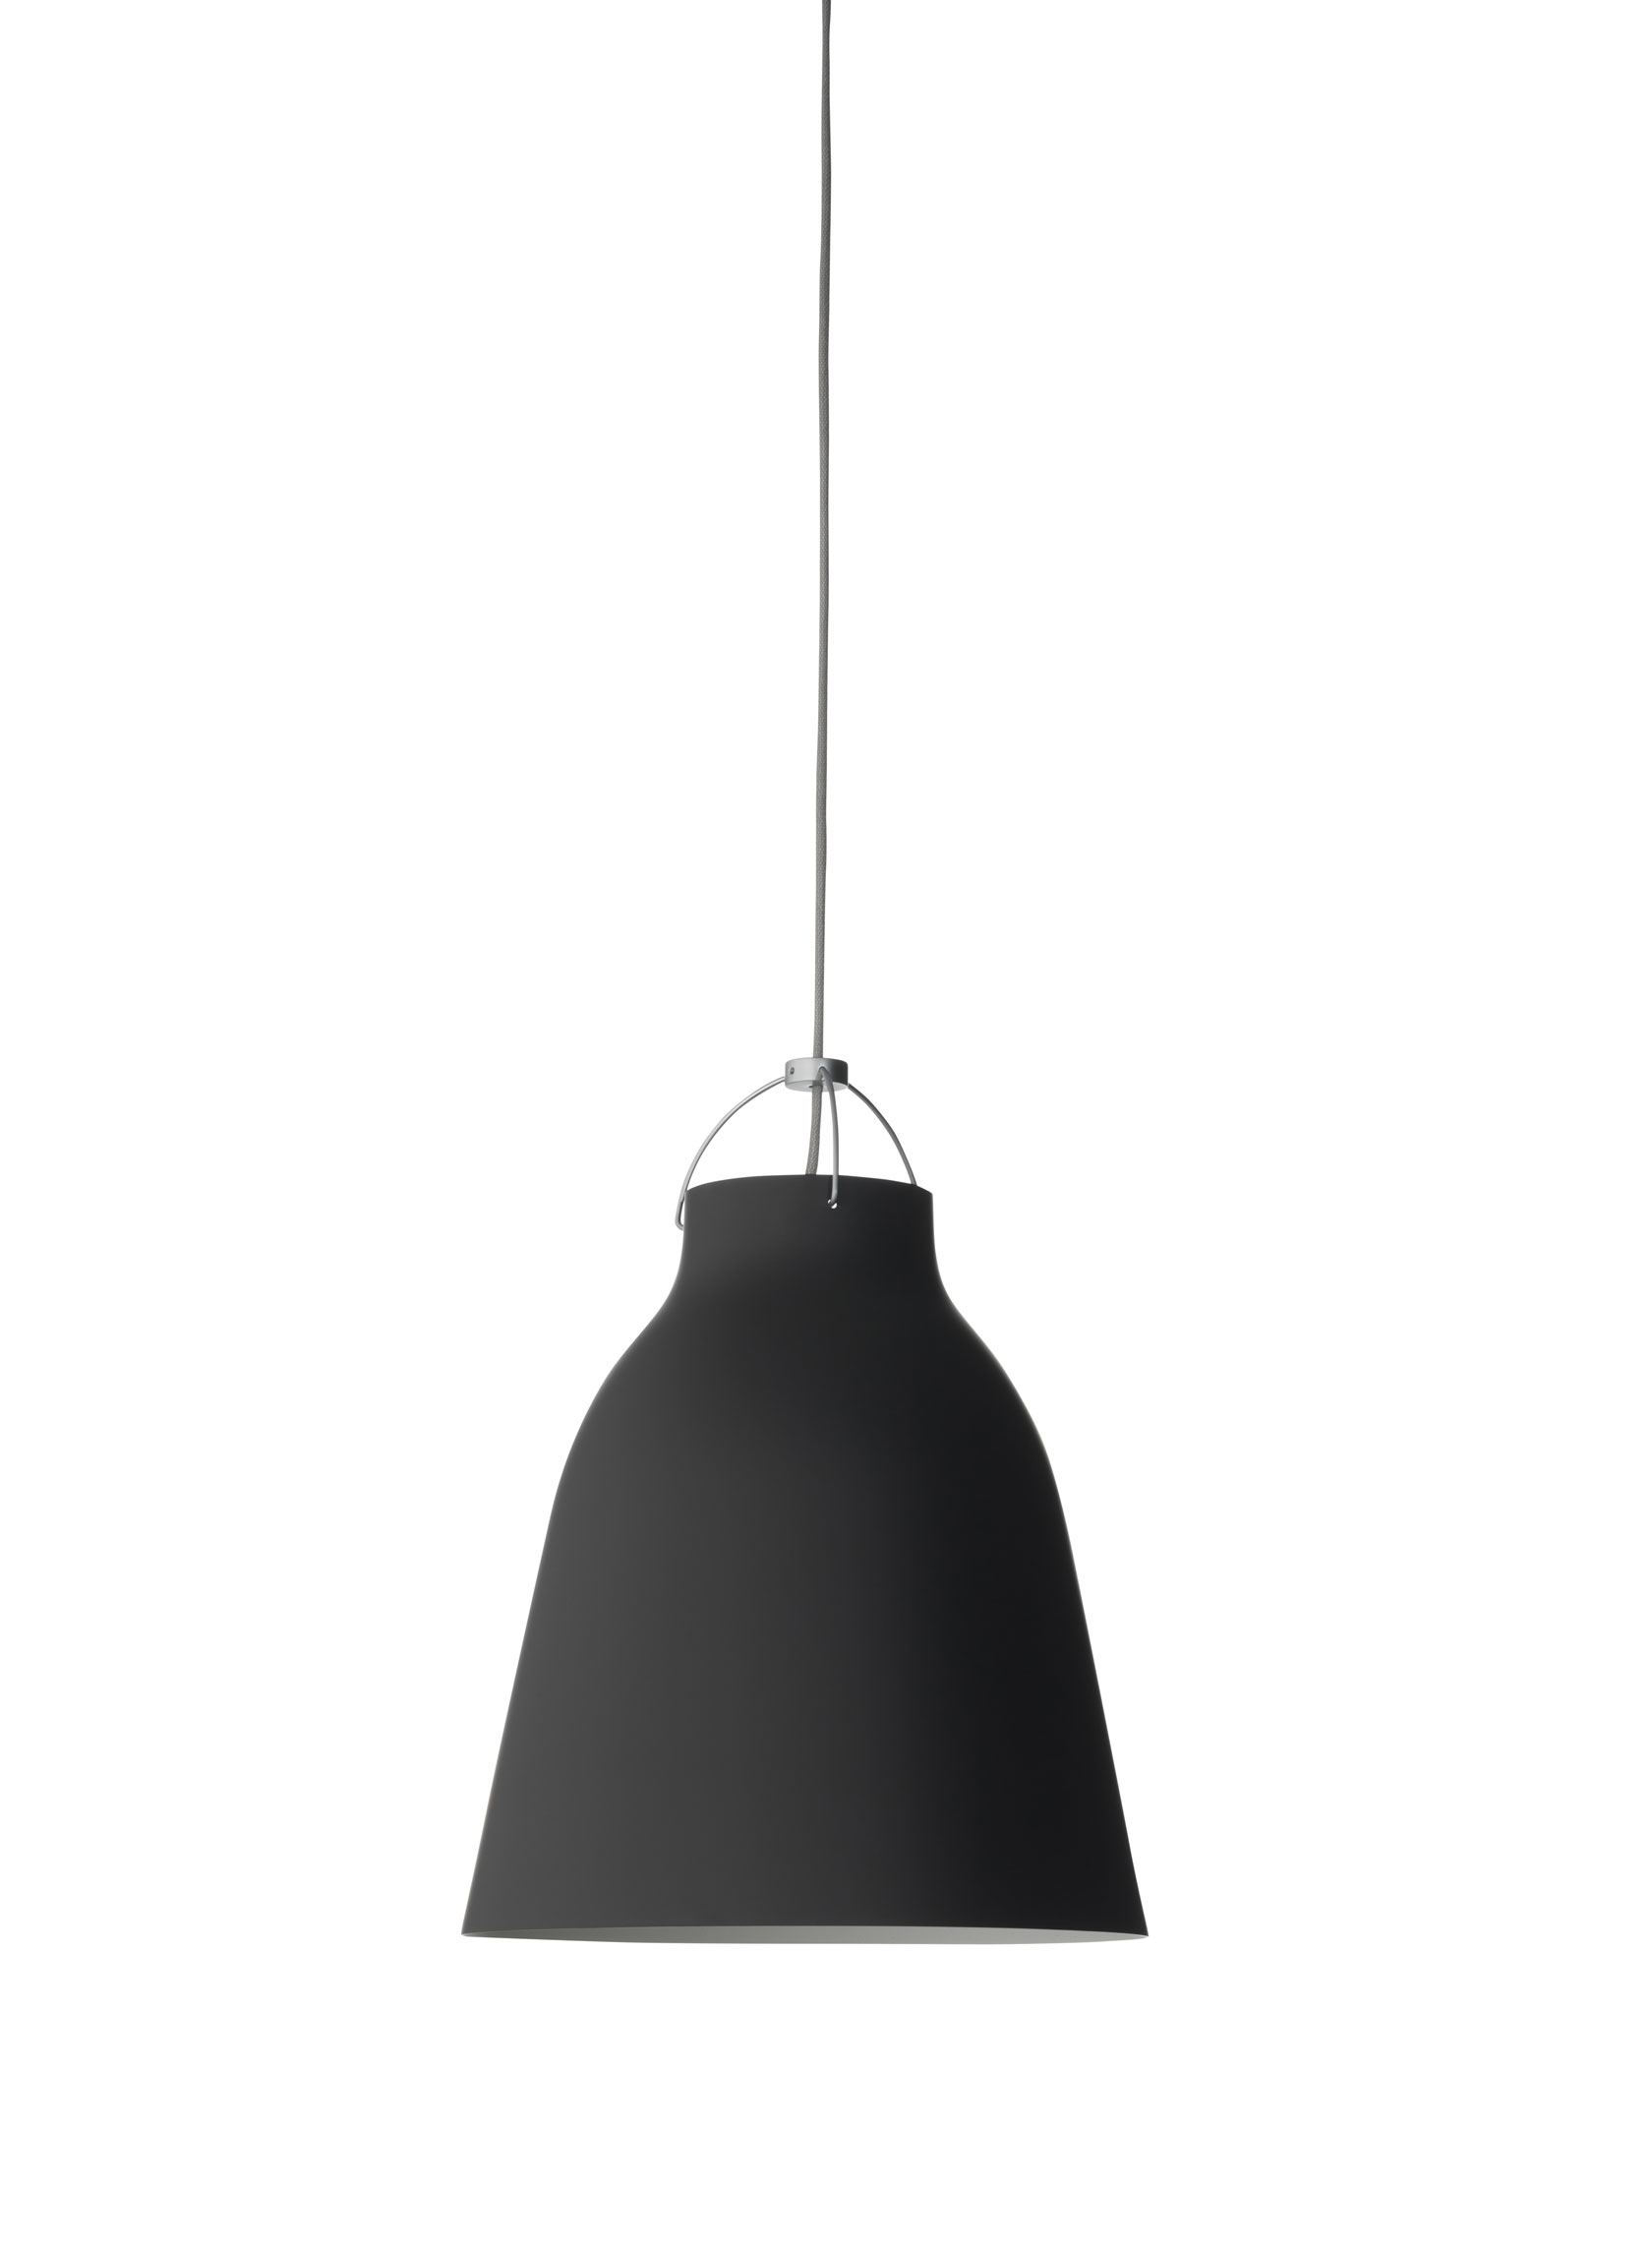 The other project that jumpstarted her career was the Caravaggio lamp (2005, with Lightyears).